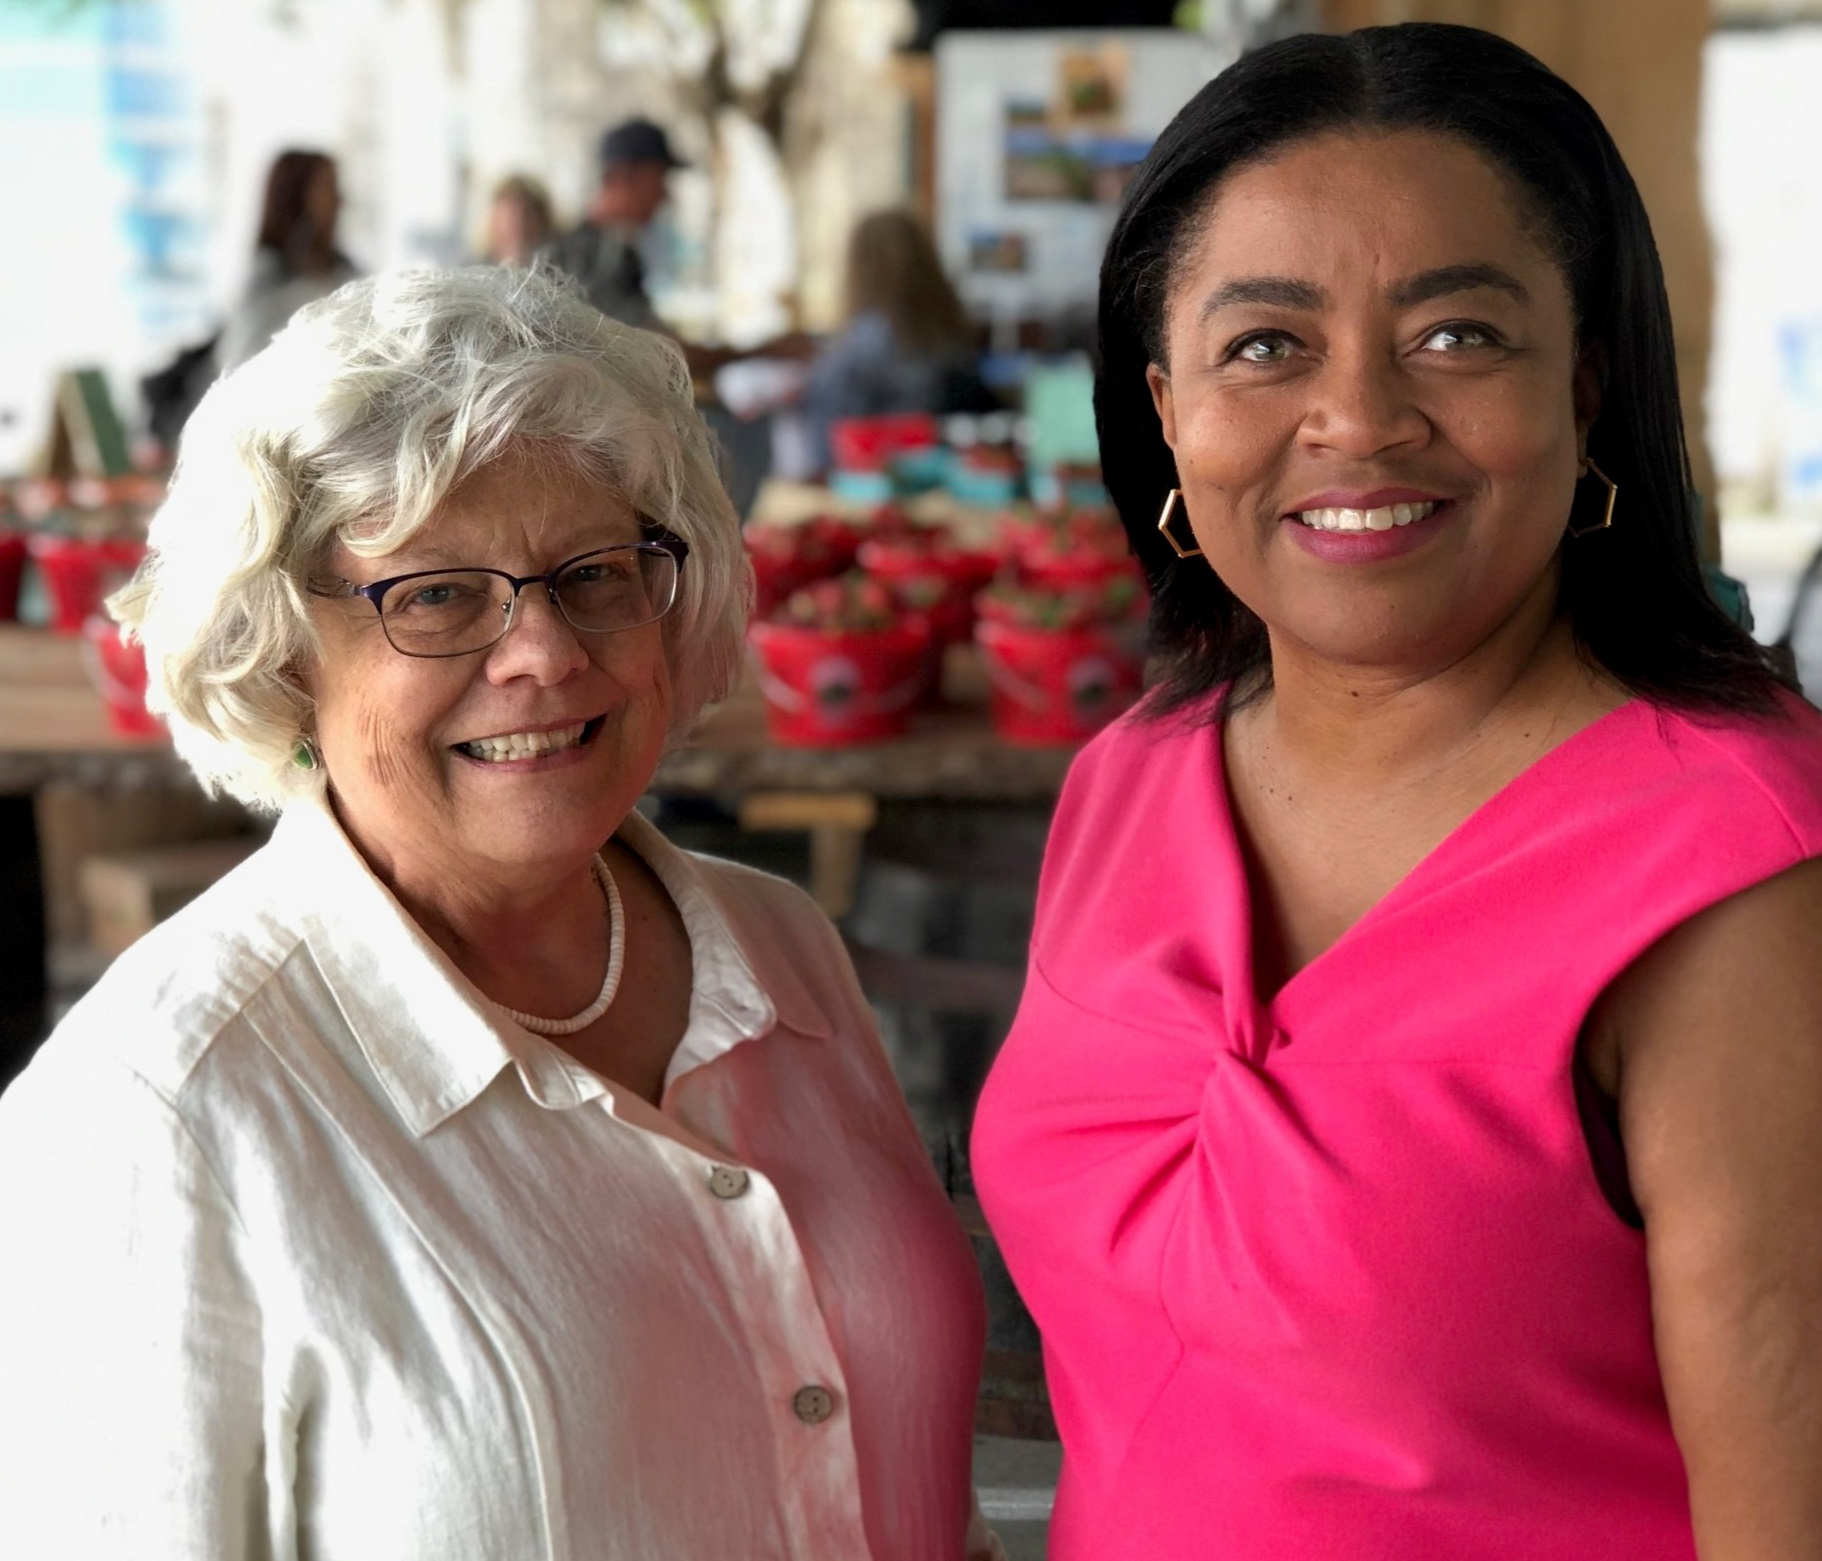 Brenda Butka (left) and Angela Crane-Jones are the newest members of the Nashville Farmers' Market Board of Directors. Angela, who is filling out the term of her predecessor, will serve until 2021. Brenda's term will expire in 2024.